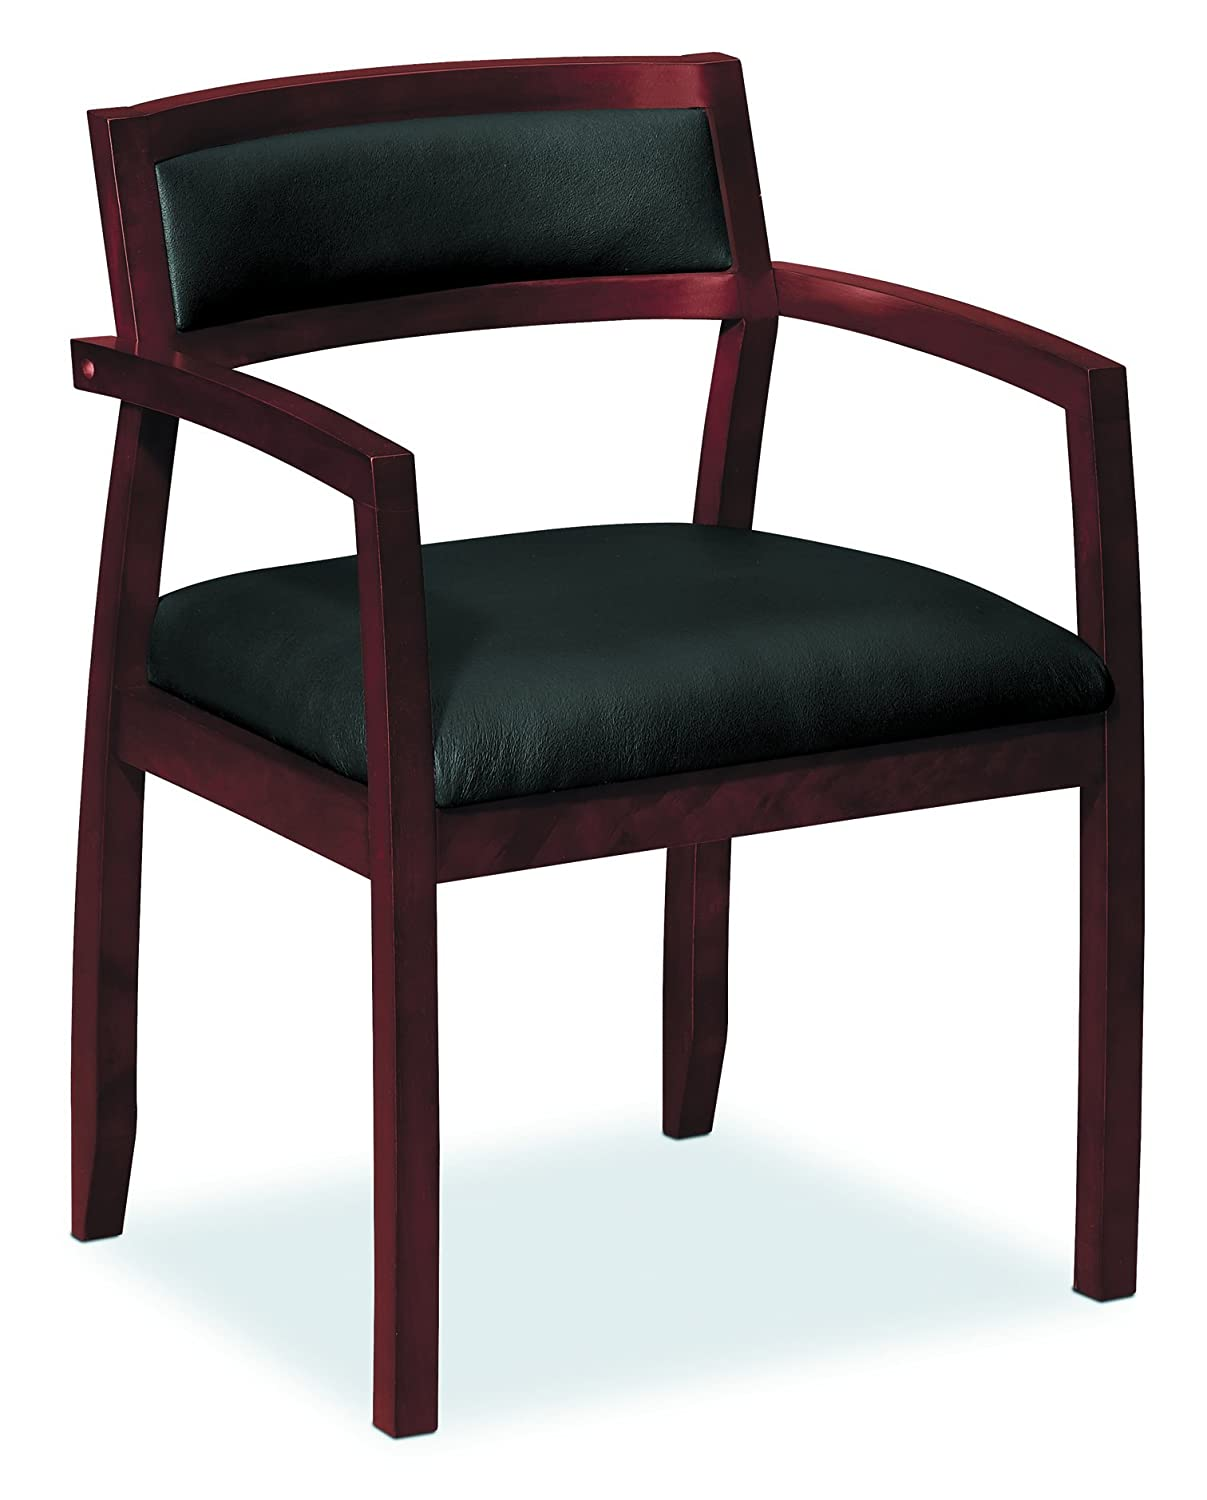 Basyx VL852NST11 Wood Guest Chairs w/Black Leather Seat/Upholstered Back, Mahogany Finish United Stationers HVL852.N.SB11